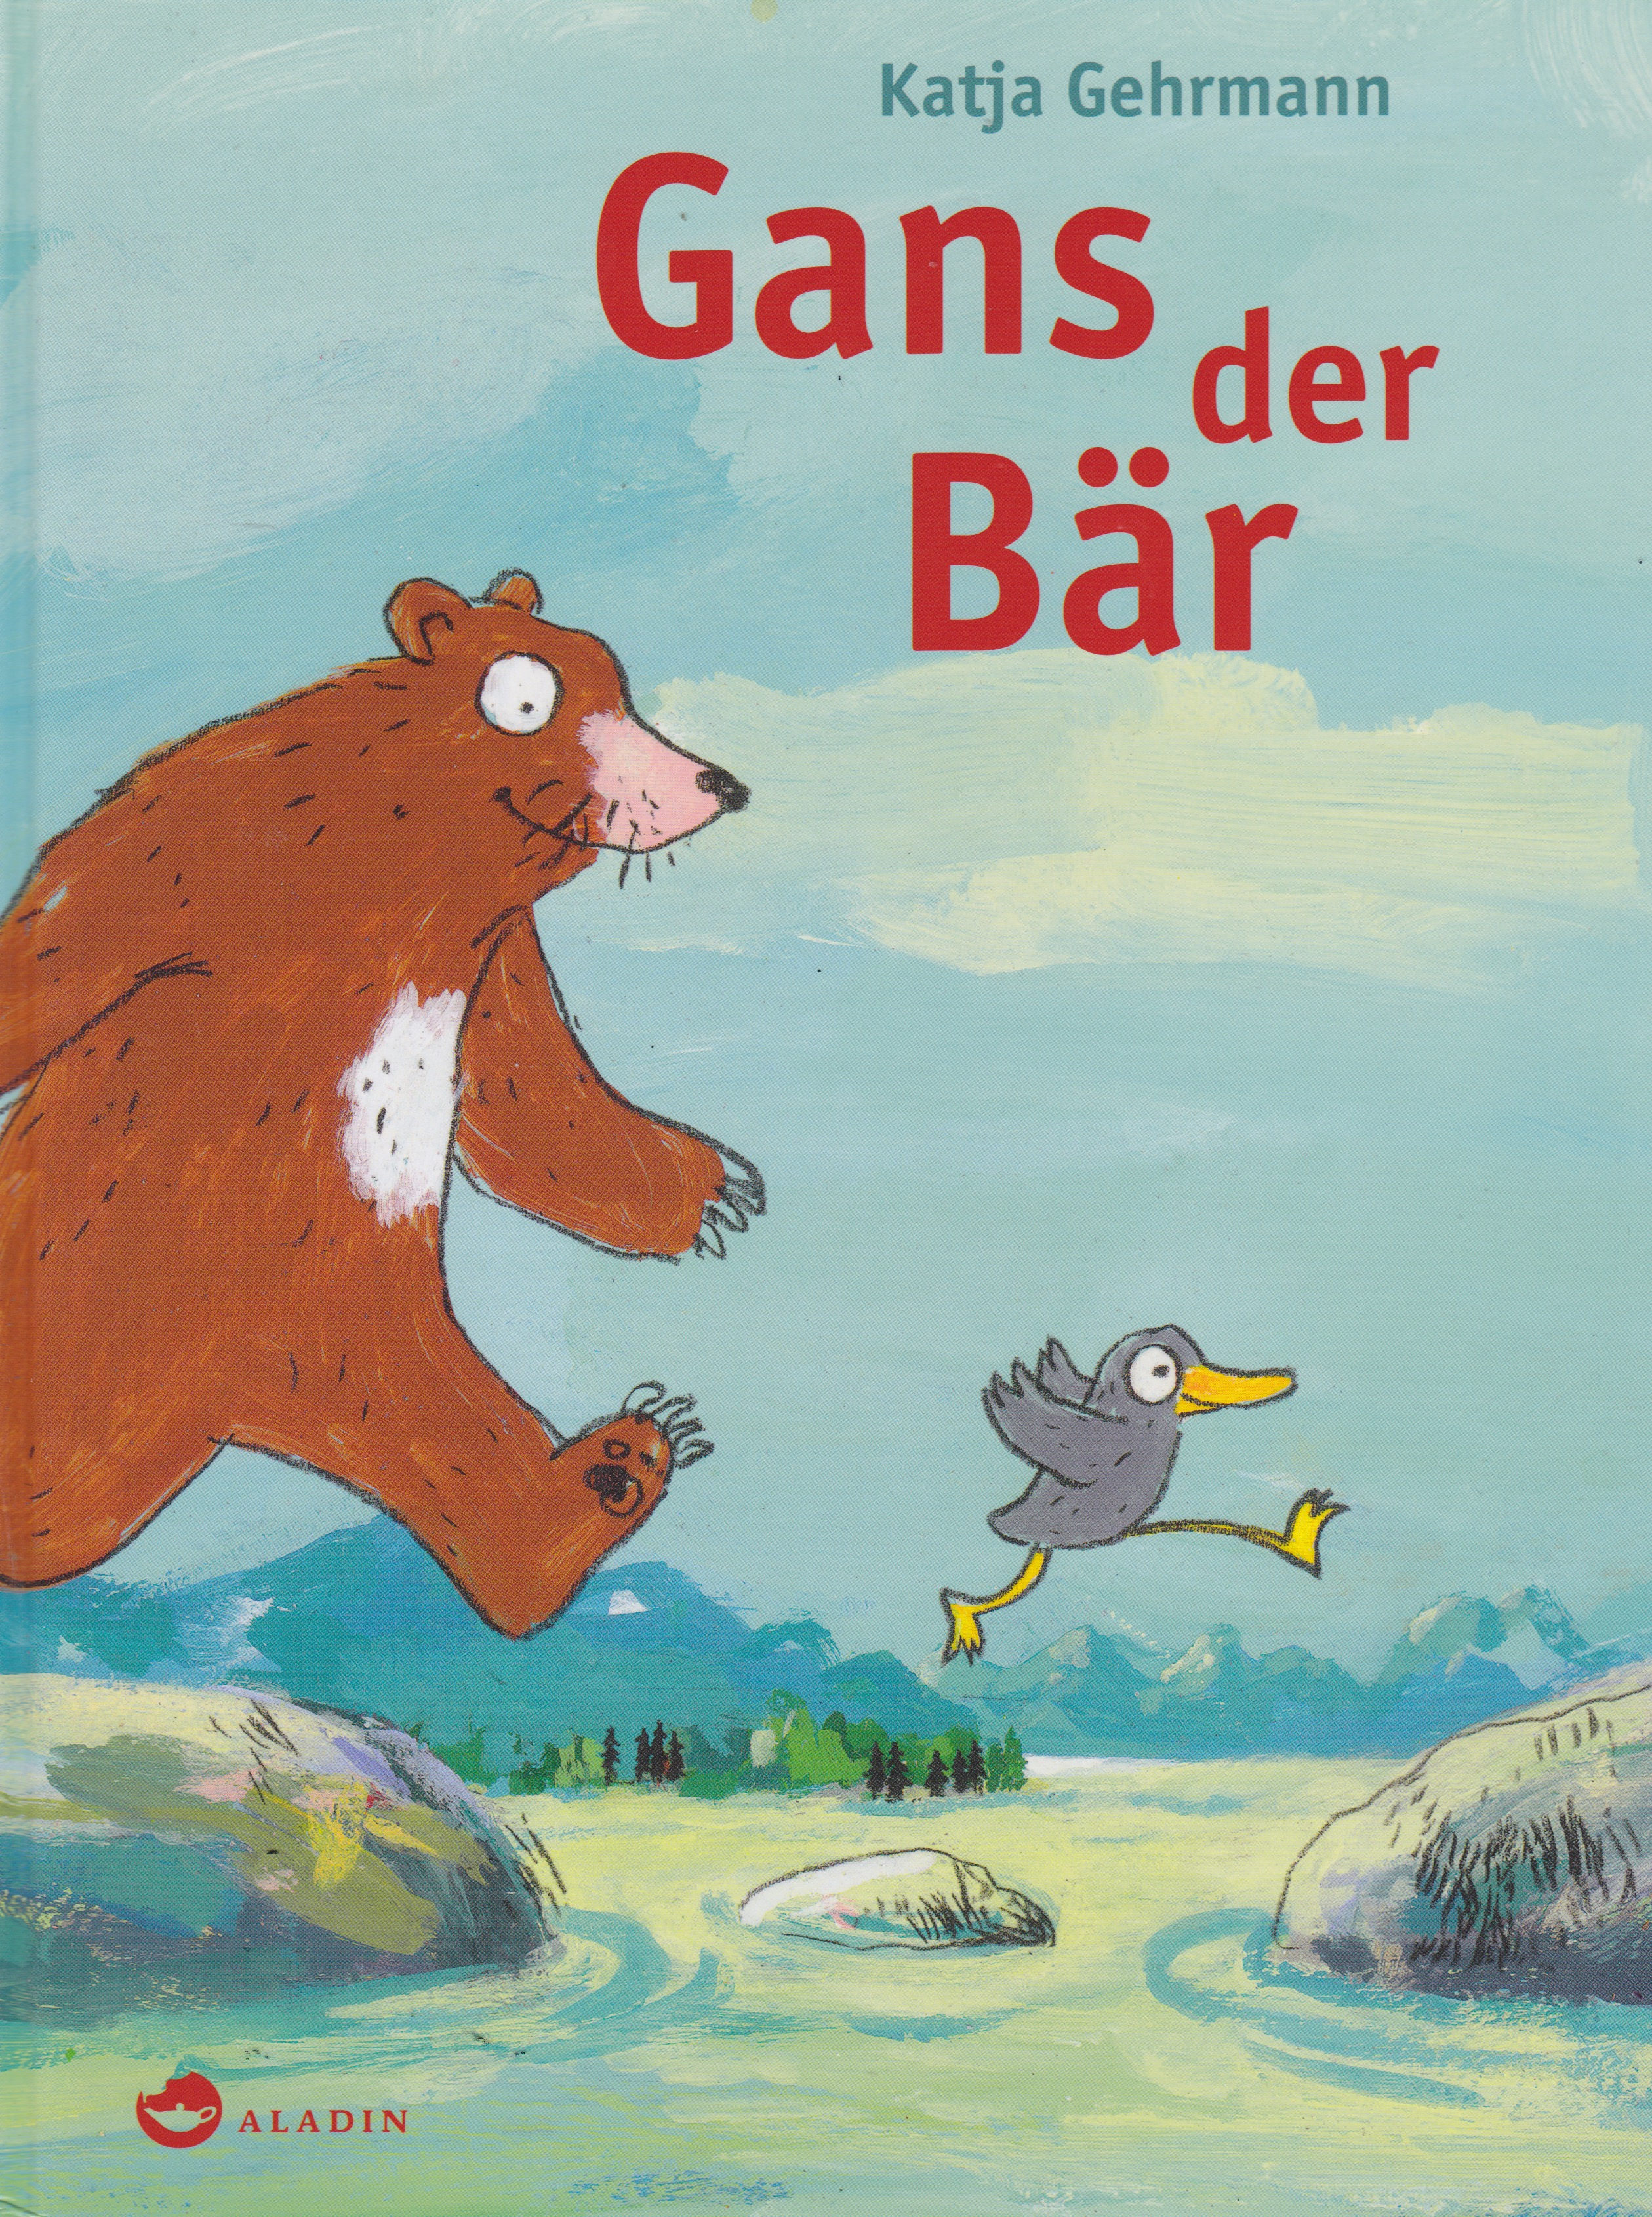 Gans der Bär Book Cover